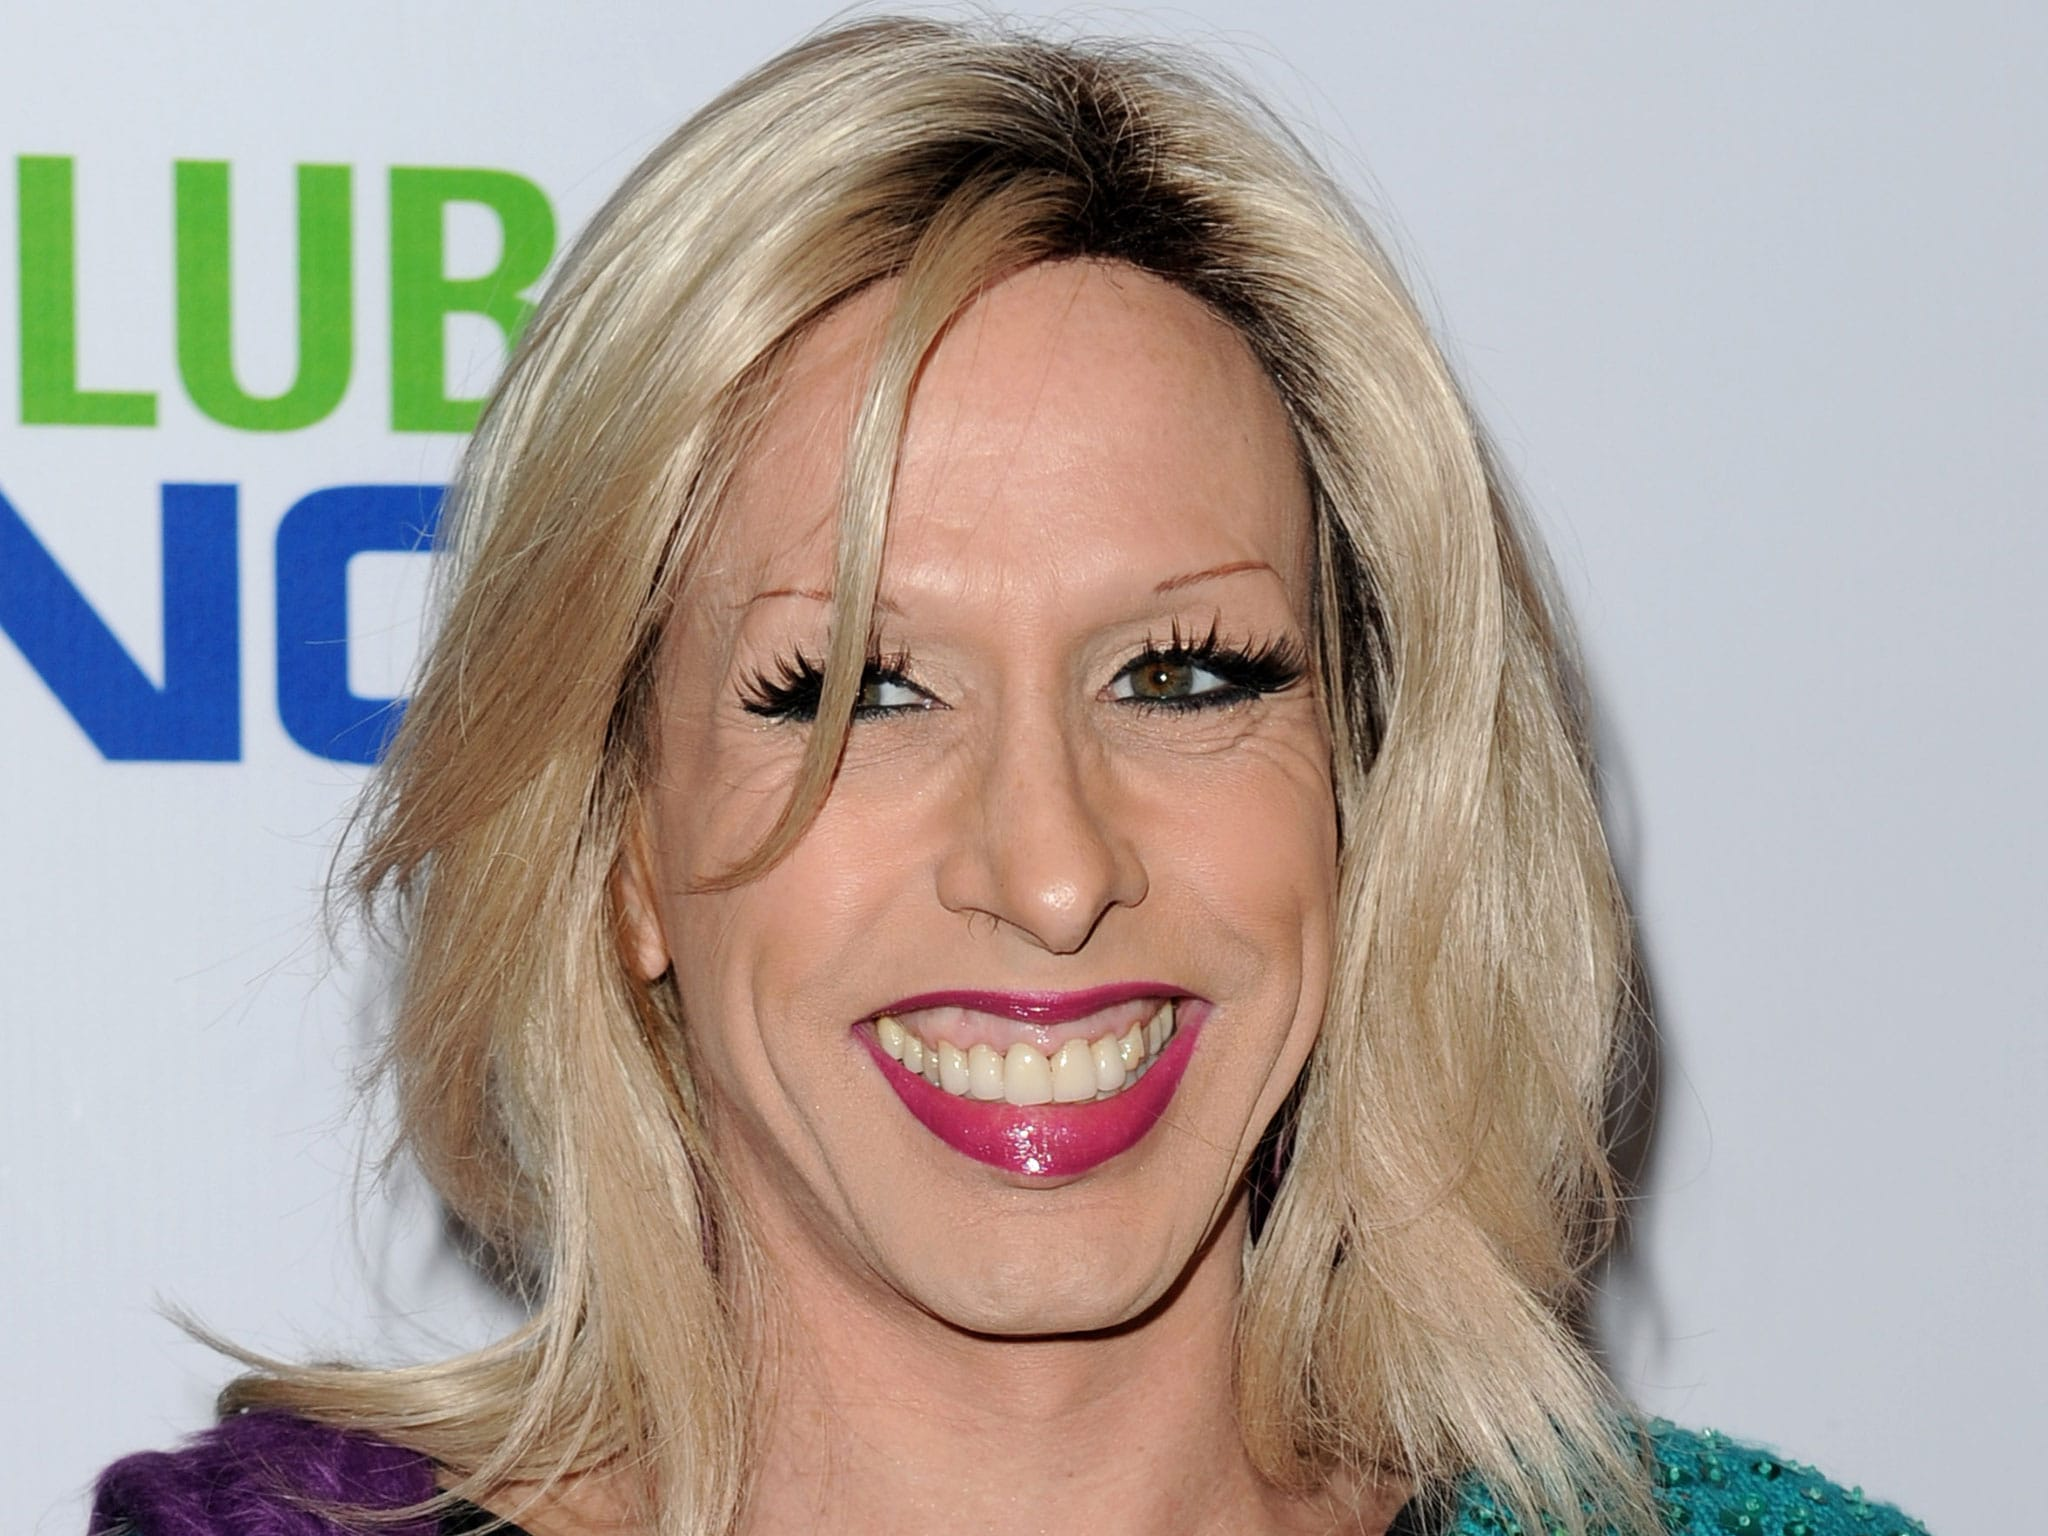 Alexis Arquette Wallpapers hd